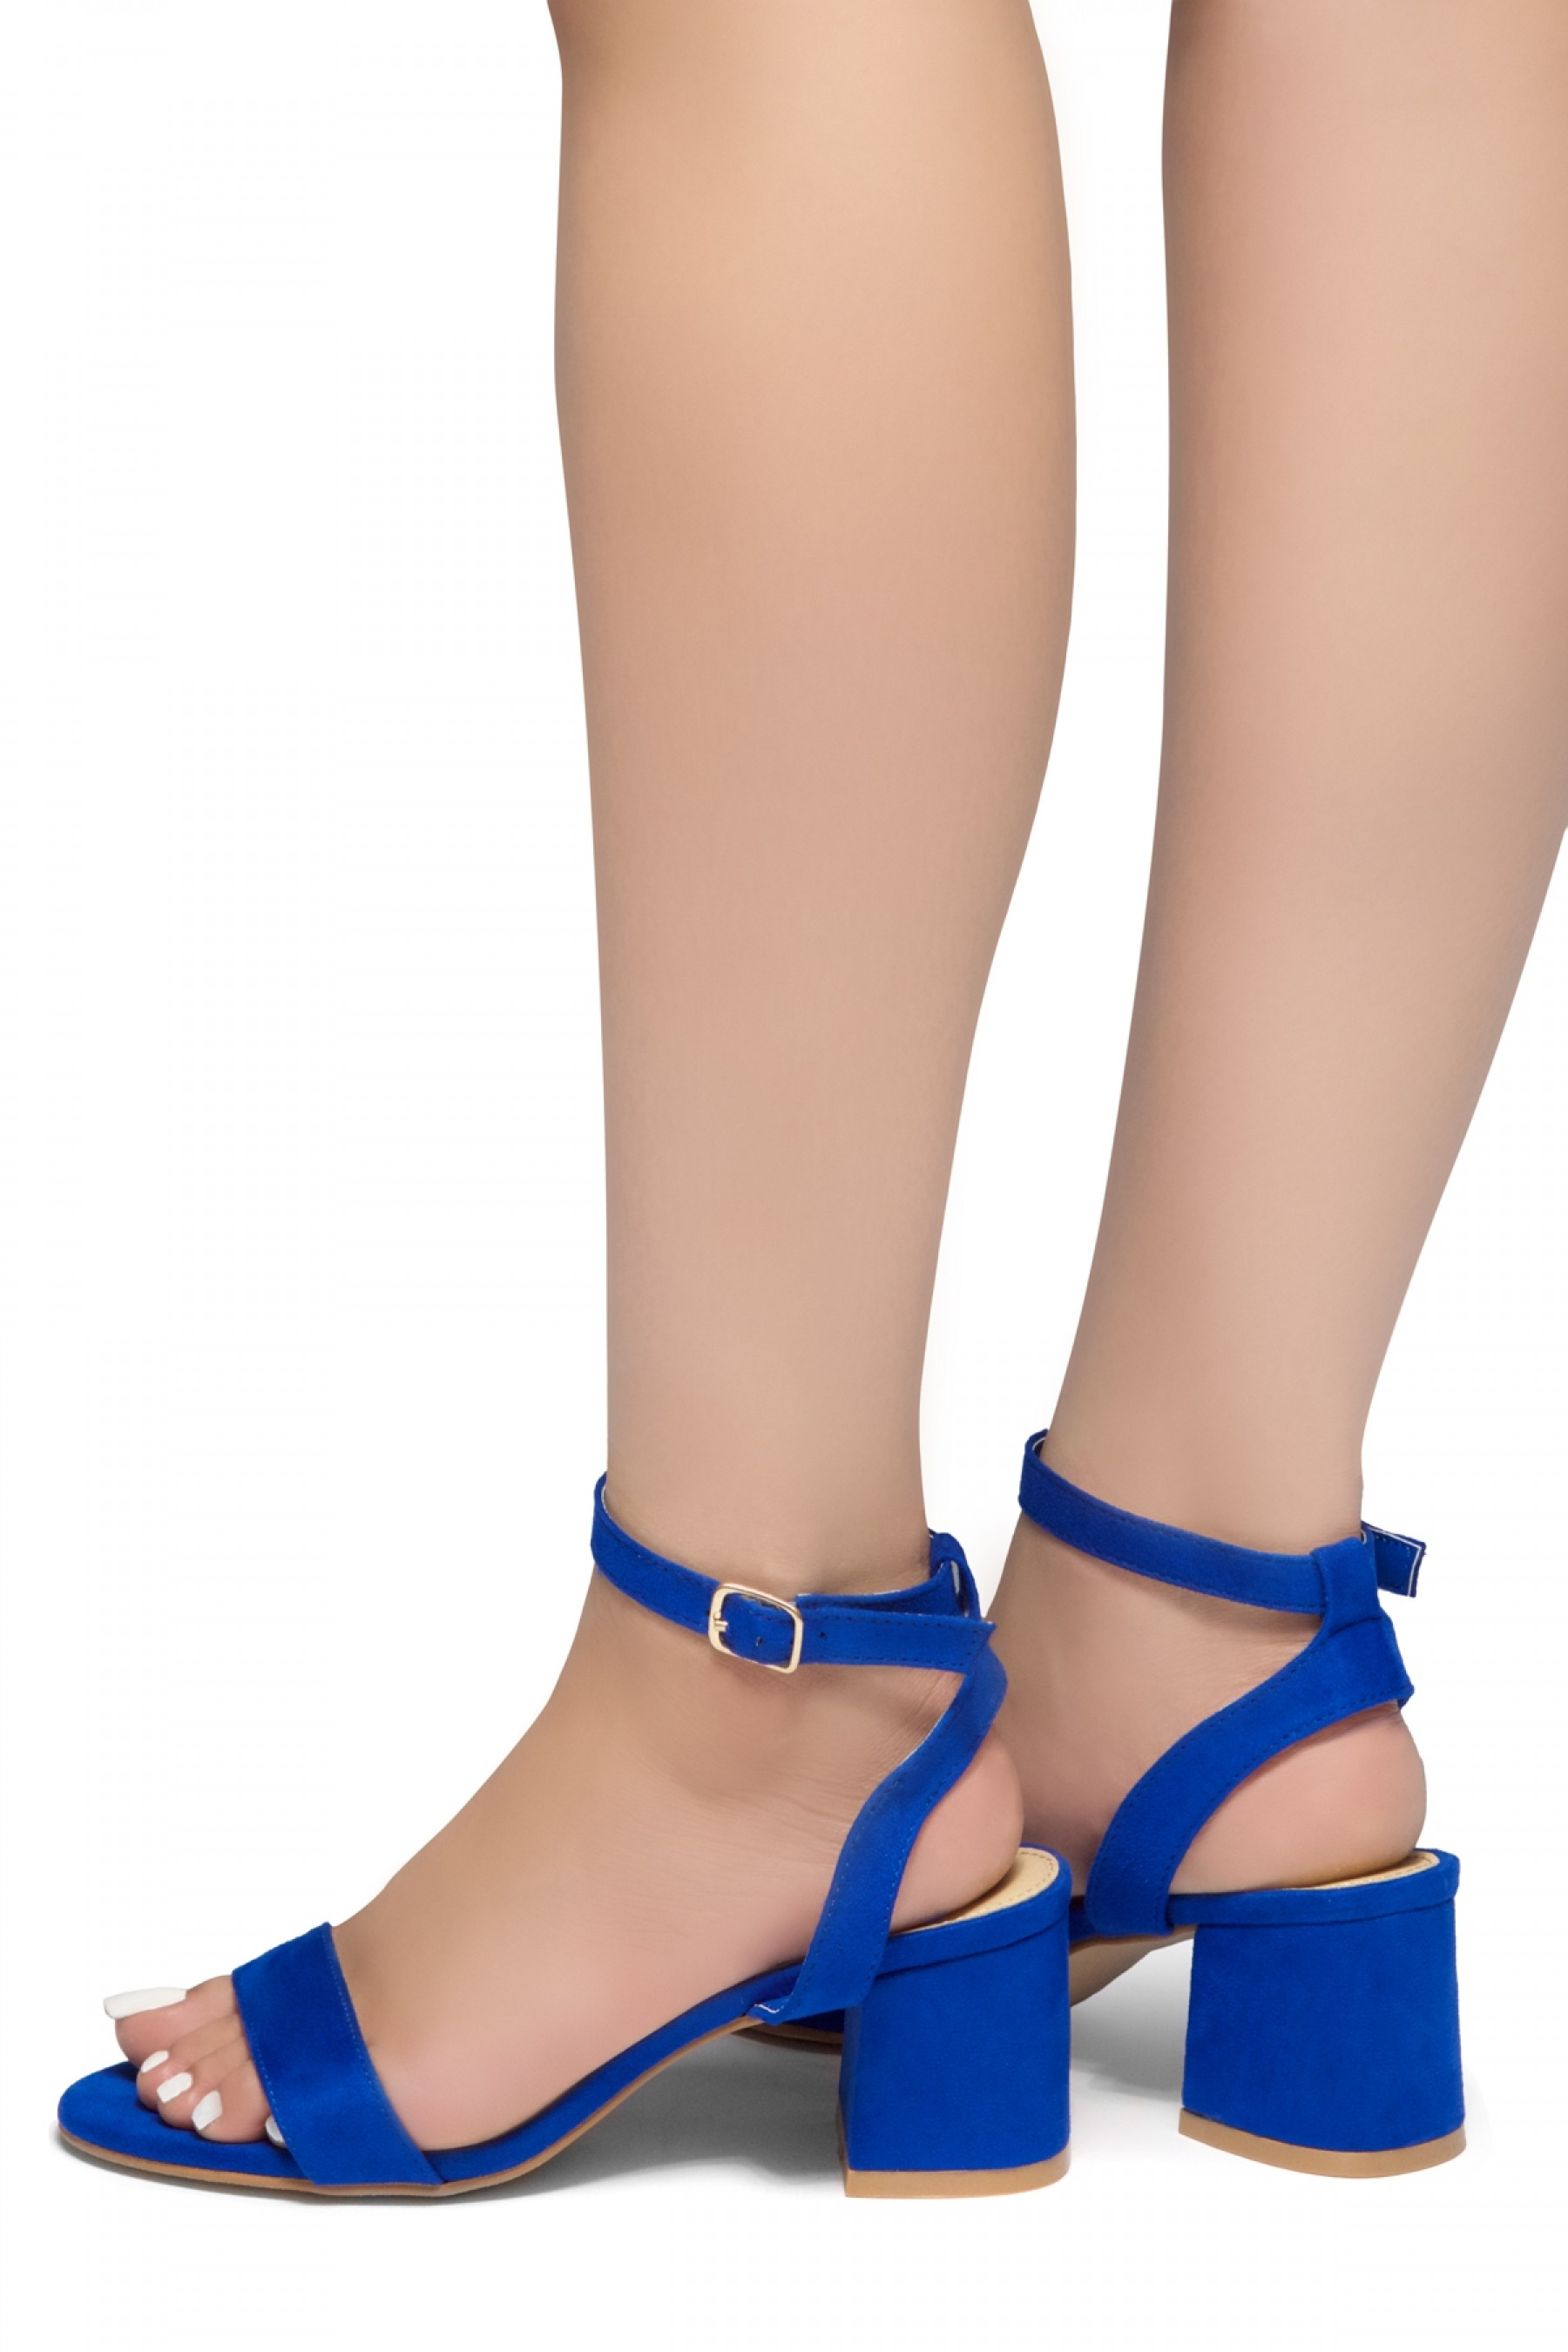 HerStyle KEEPTALKING-Suede Open Toe Ankle Strap Low Chunky Heel Sandal (RoyalBlue)